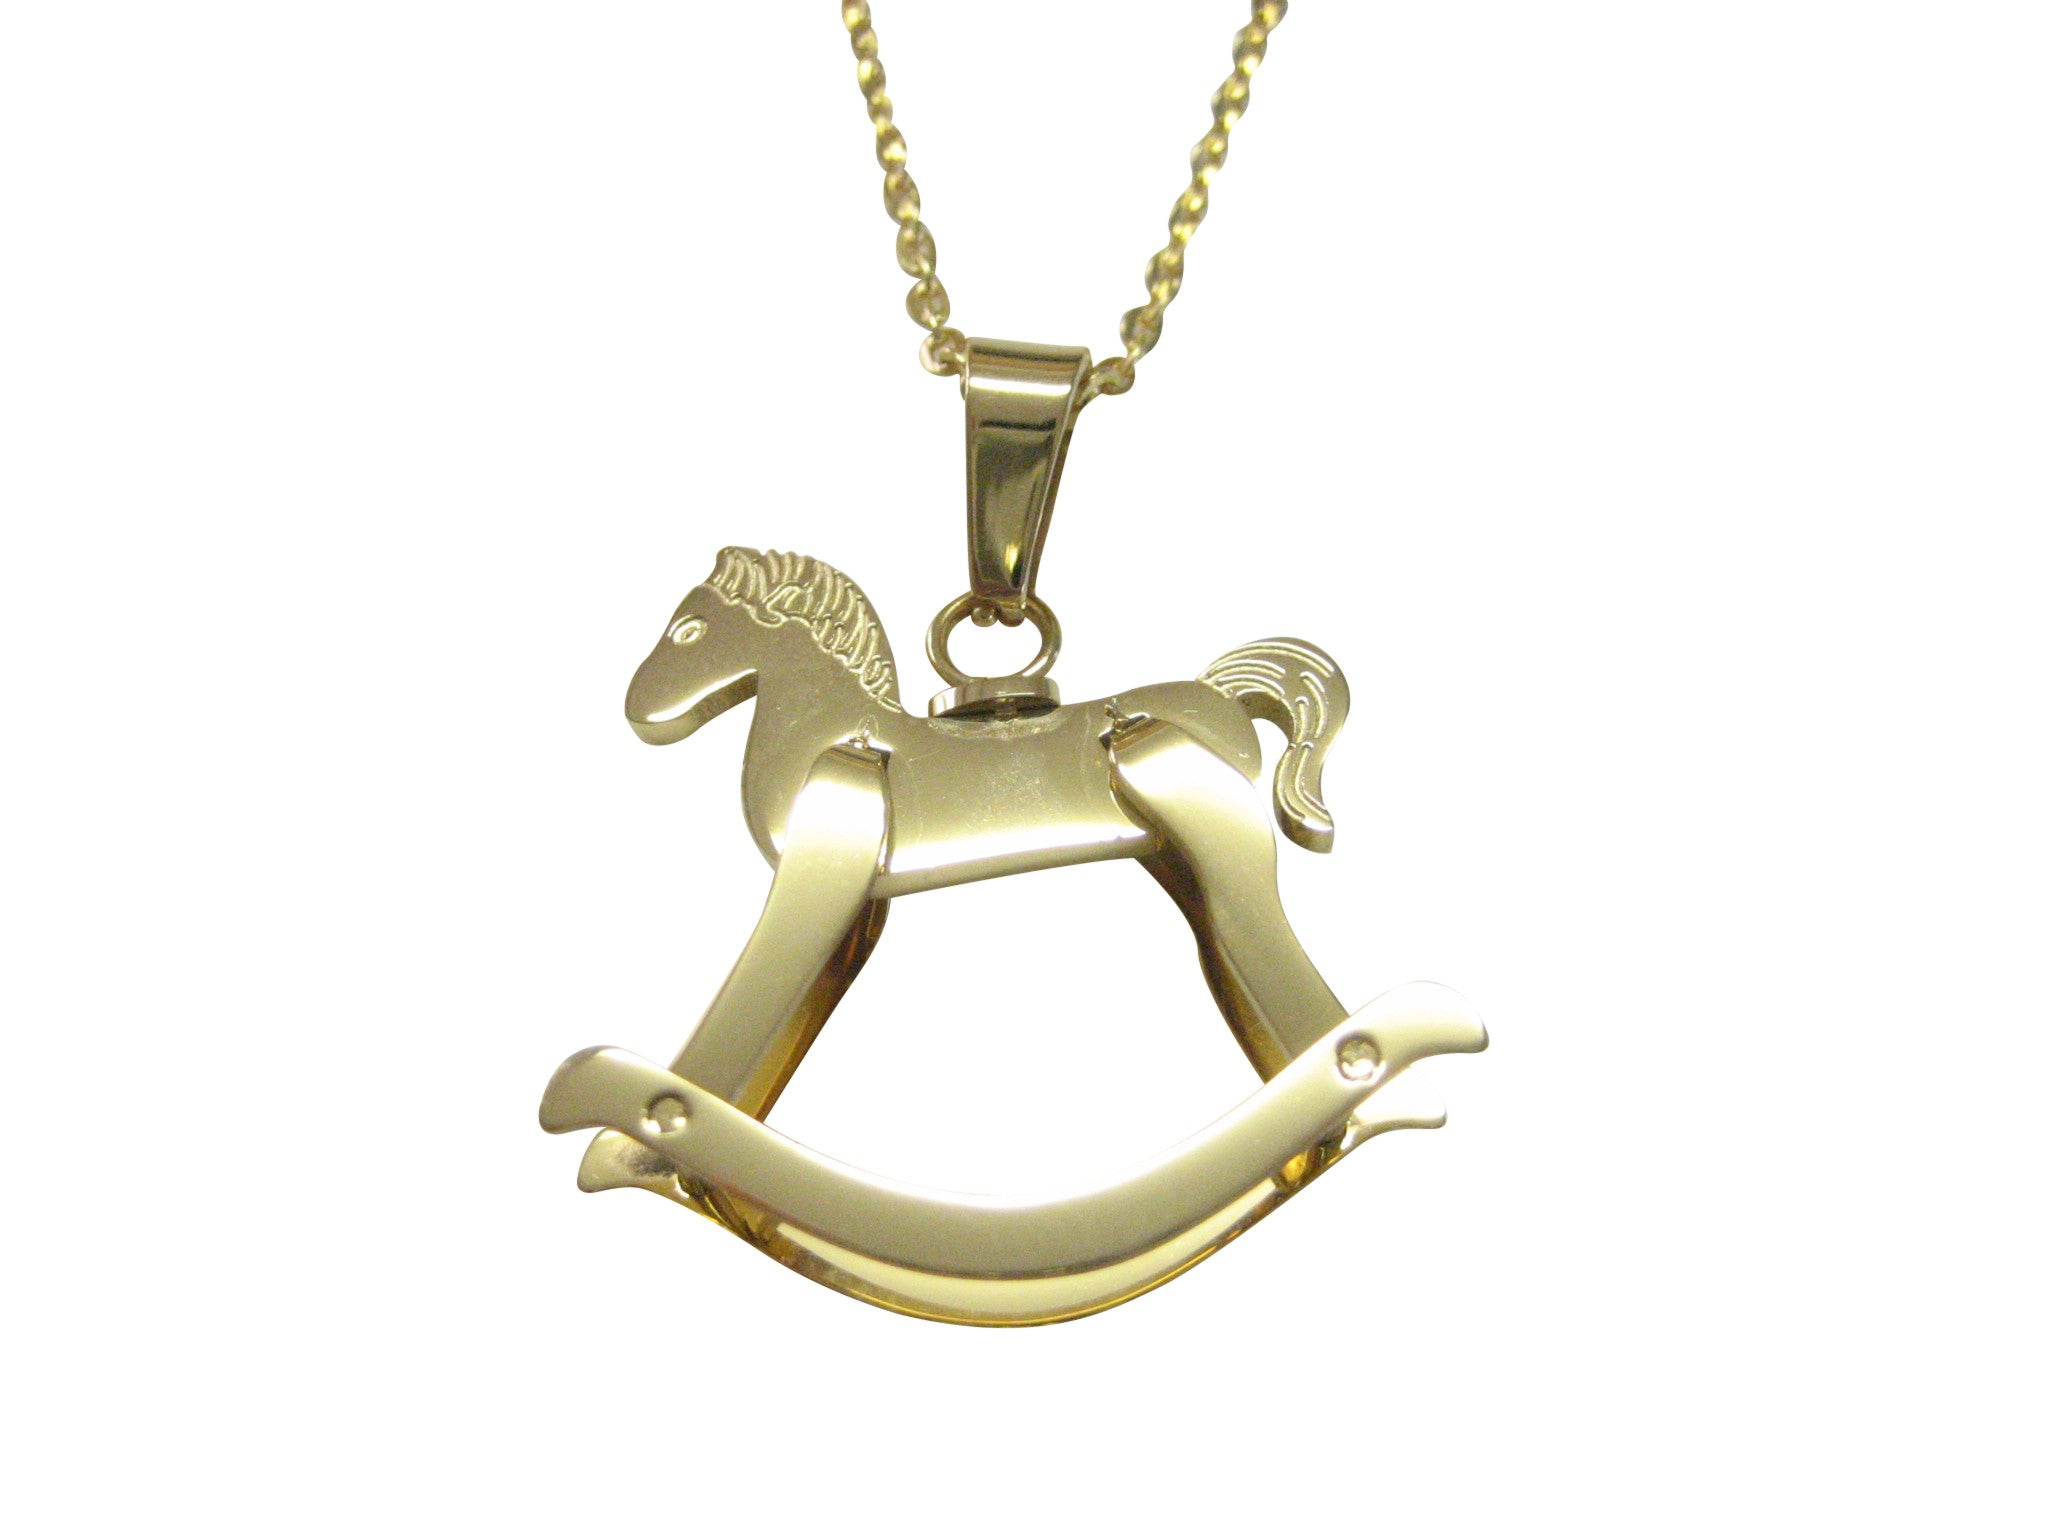 Gold Toned Rocking Horse Pendant Necklace